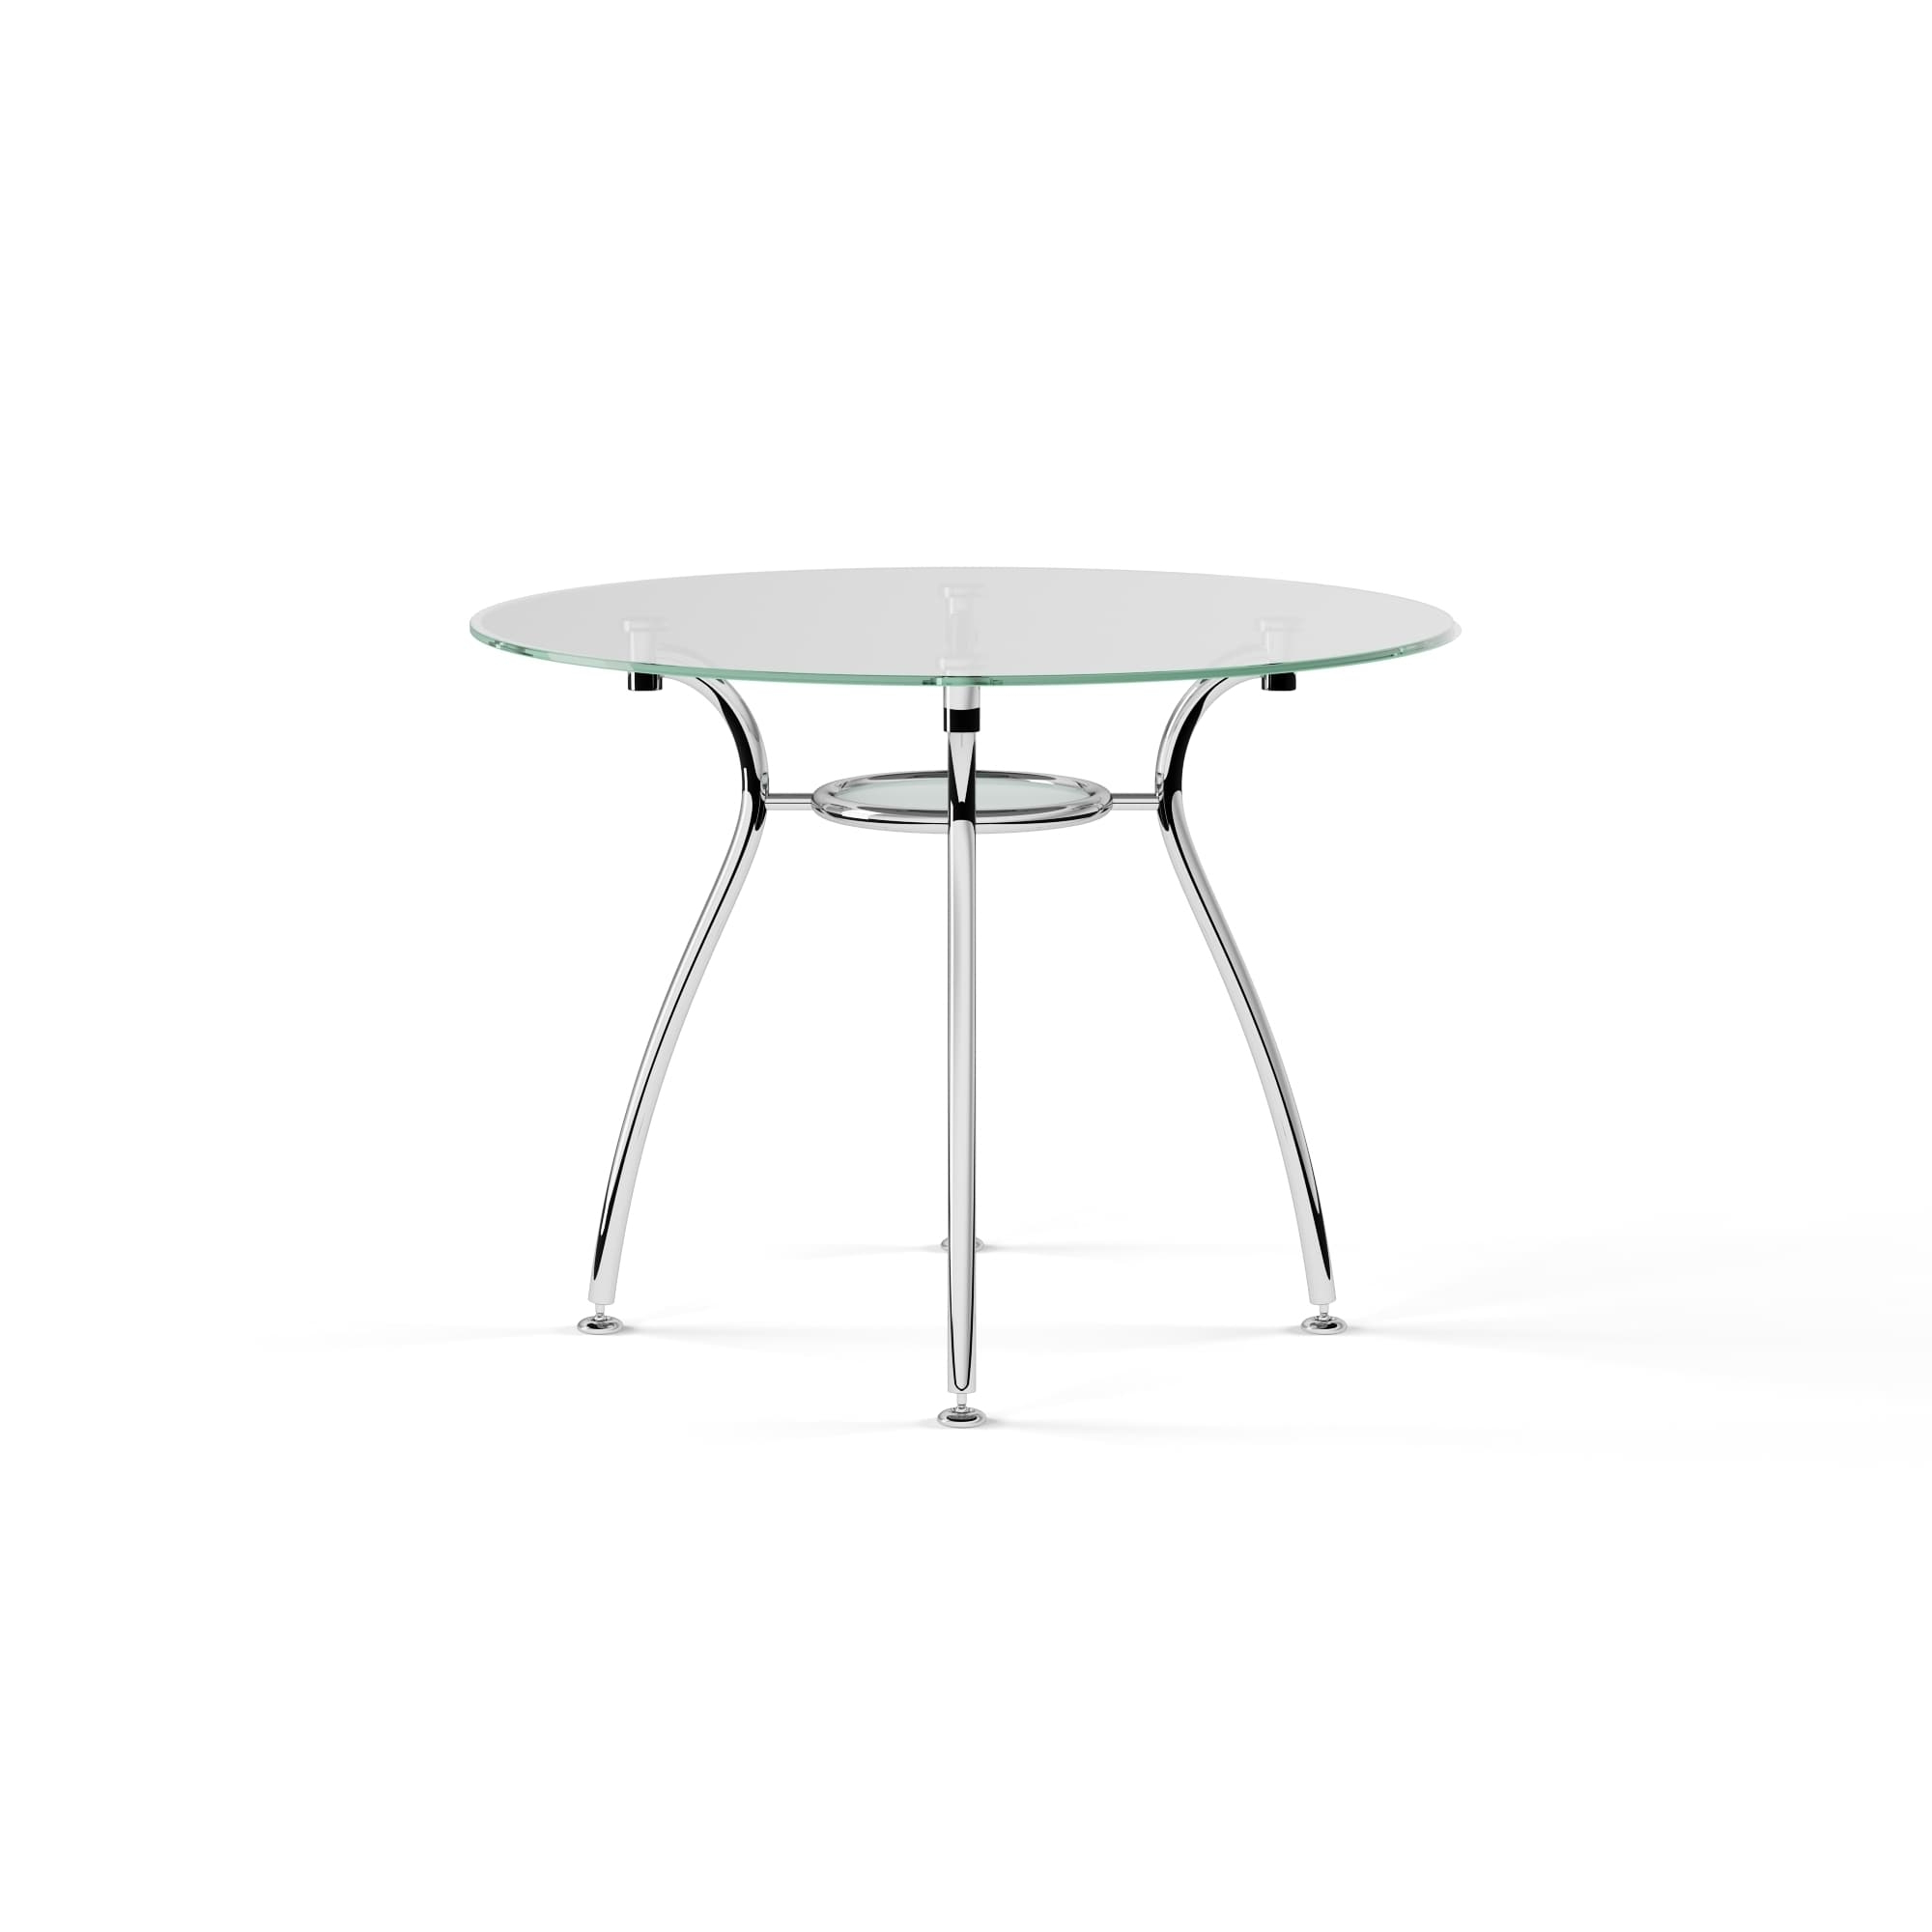 Preferred Chrome Dining Tables With Tempered Glass Intended For Porch & Den Third Ward St (View 16 of 25)